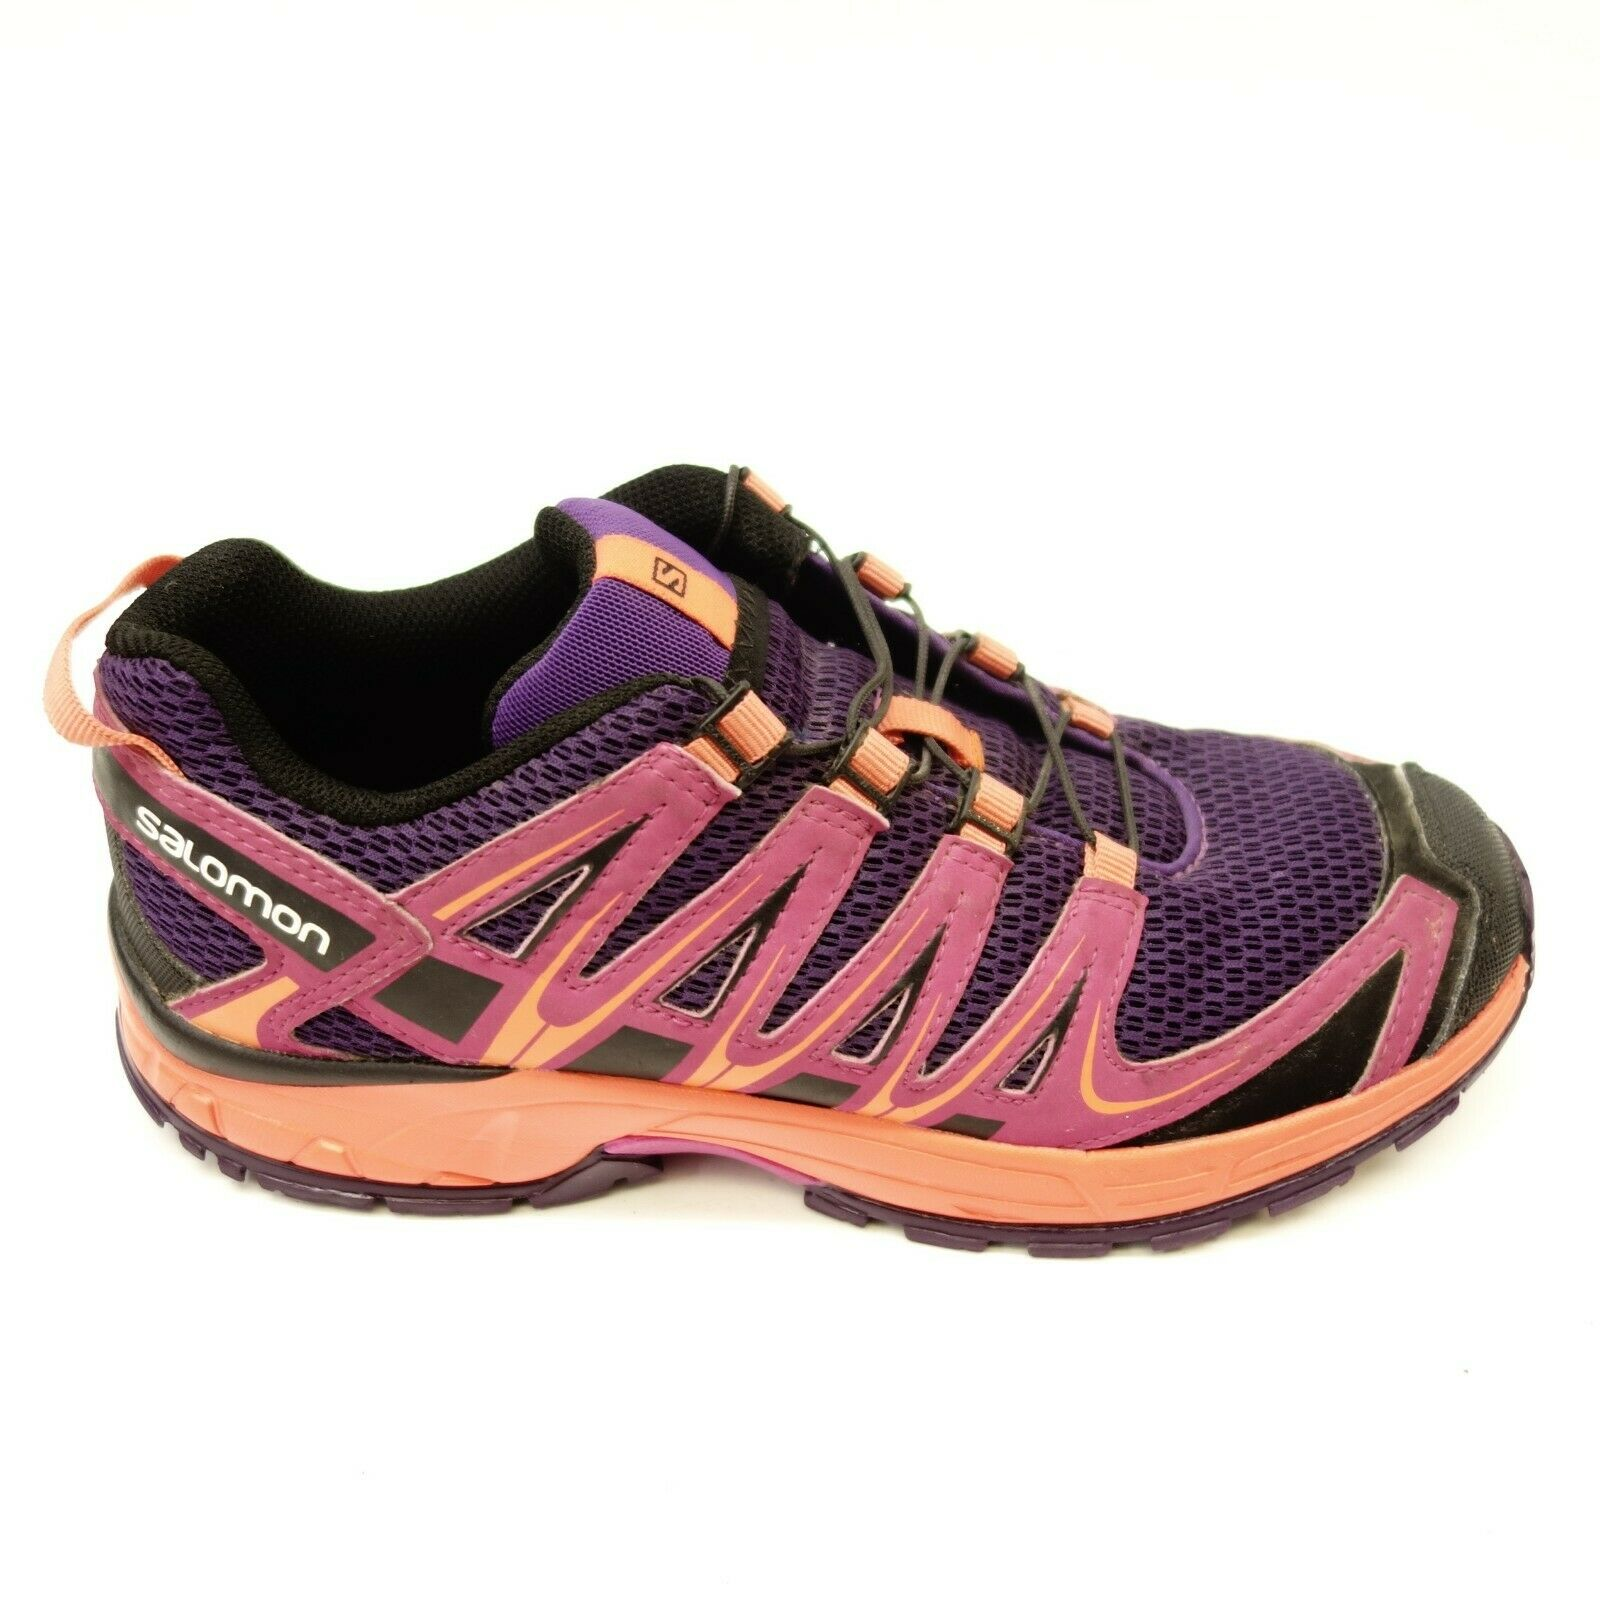 Salomon Womens Size 5 XA Pro 3D Purple Athletic Hiking Mountain Running shoes